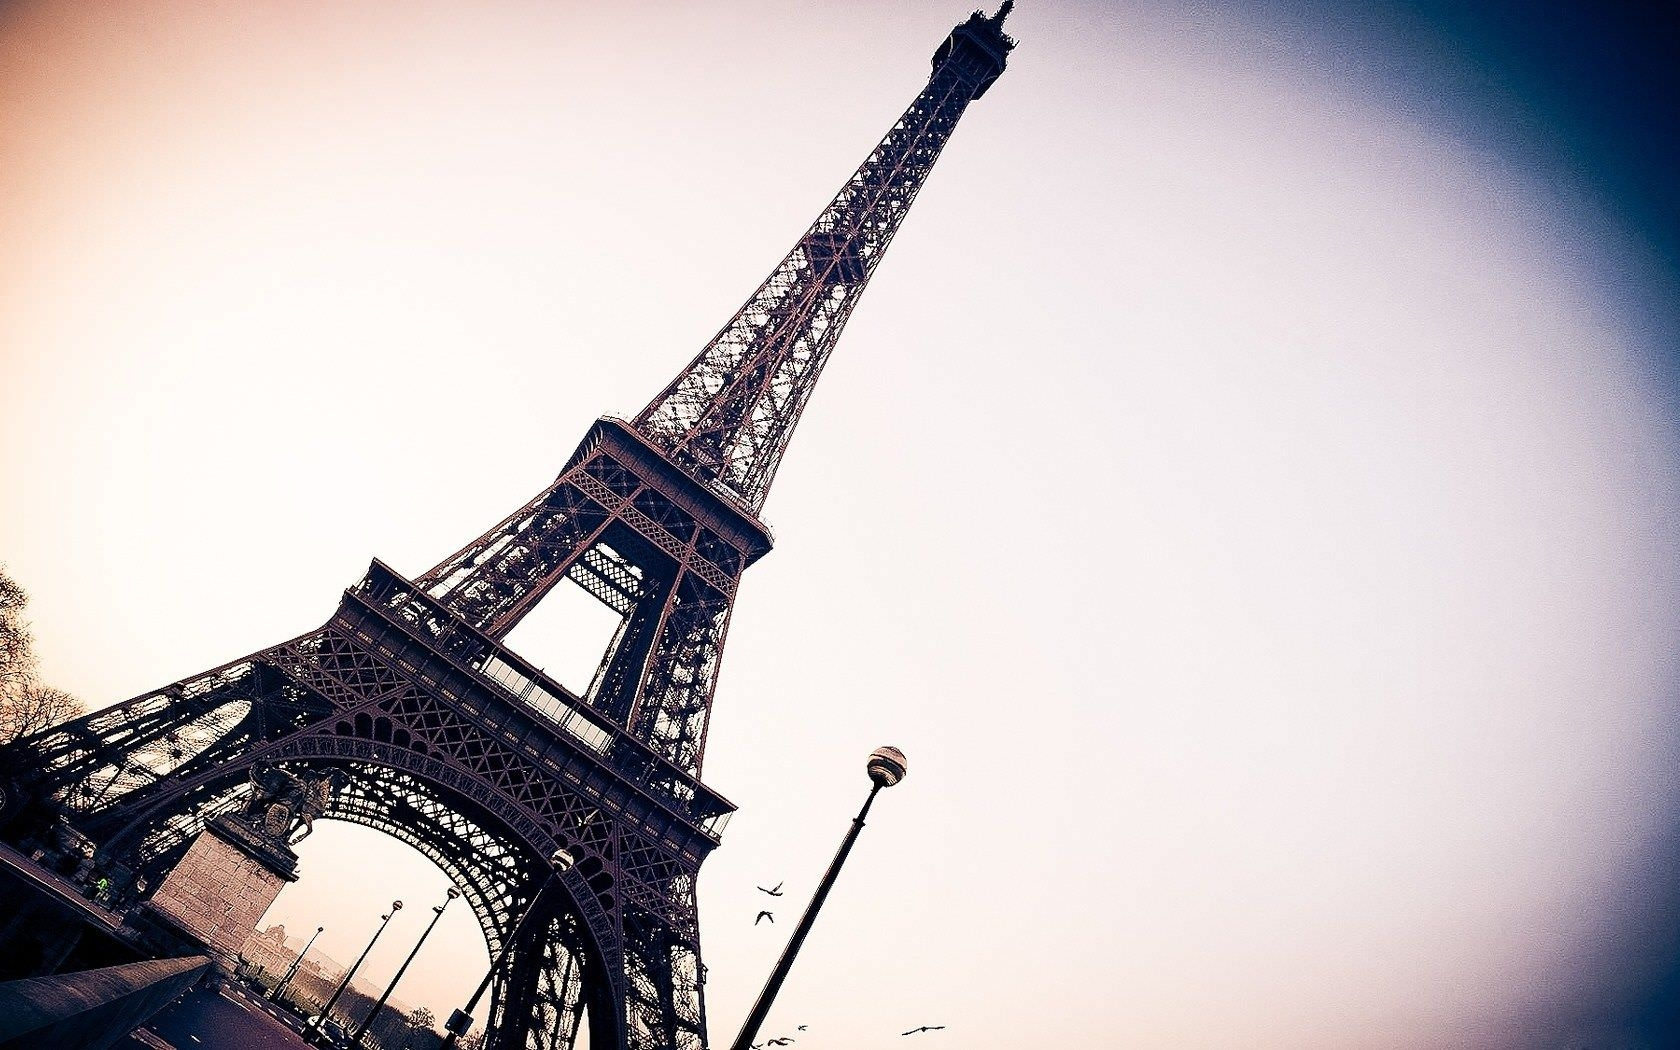 Cute Eiffel Tower Wallpaper Desktop Background #x55a3 aHuHaH.com ...